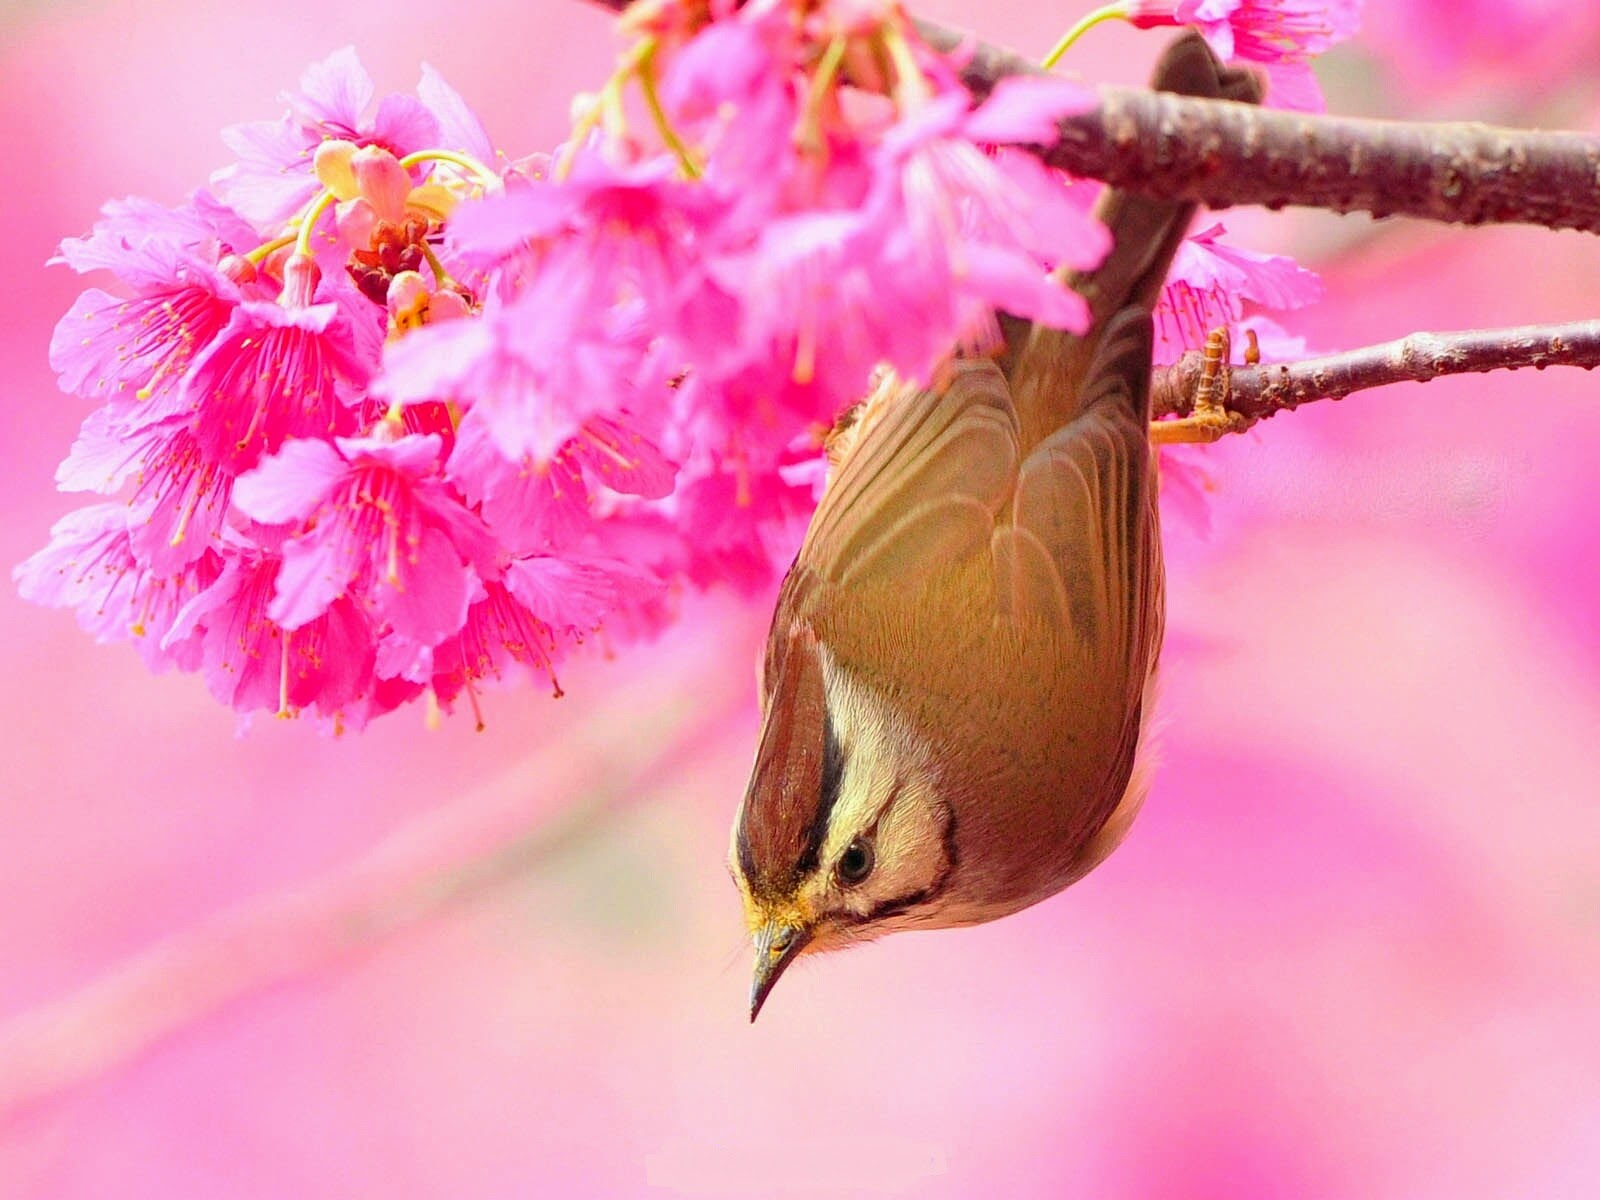 Beautiful Wallpapers In The World Natural Beauty With Bird Wallpaper